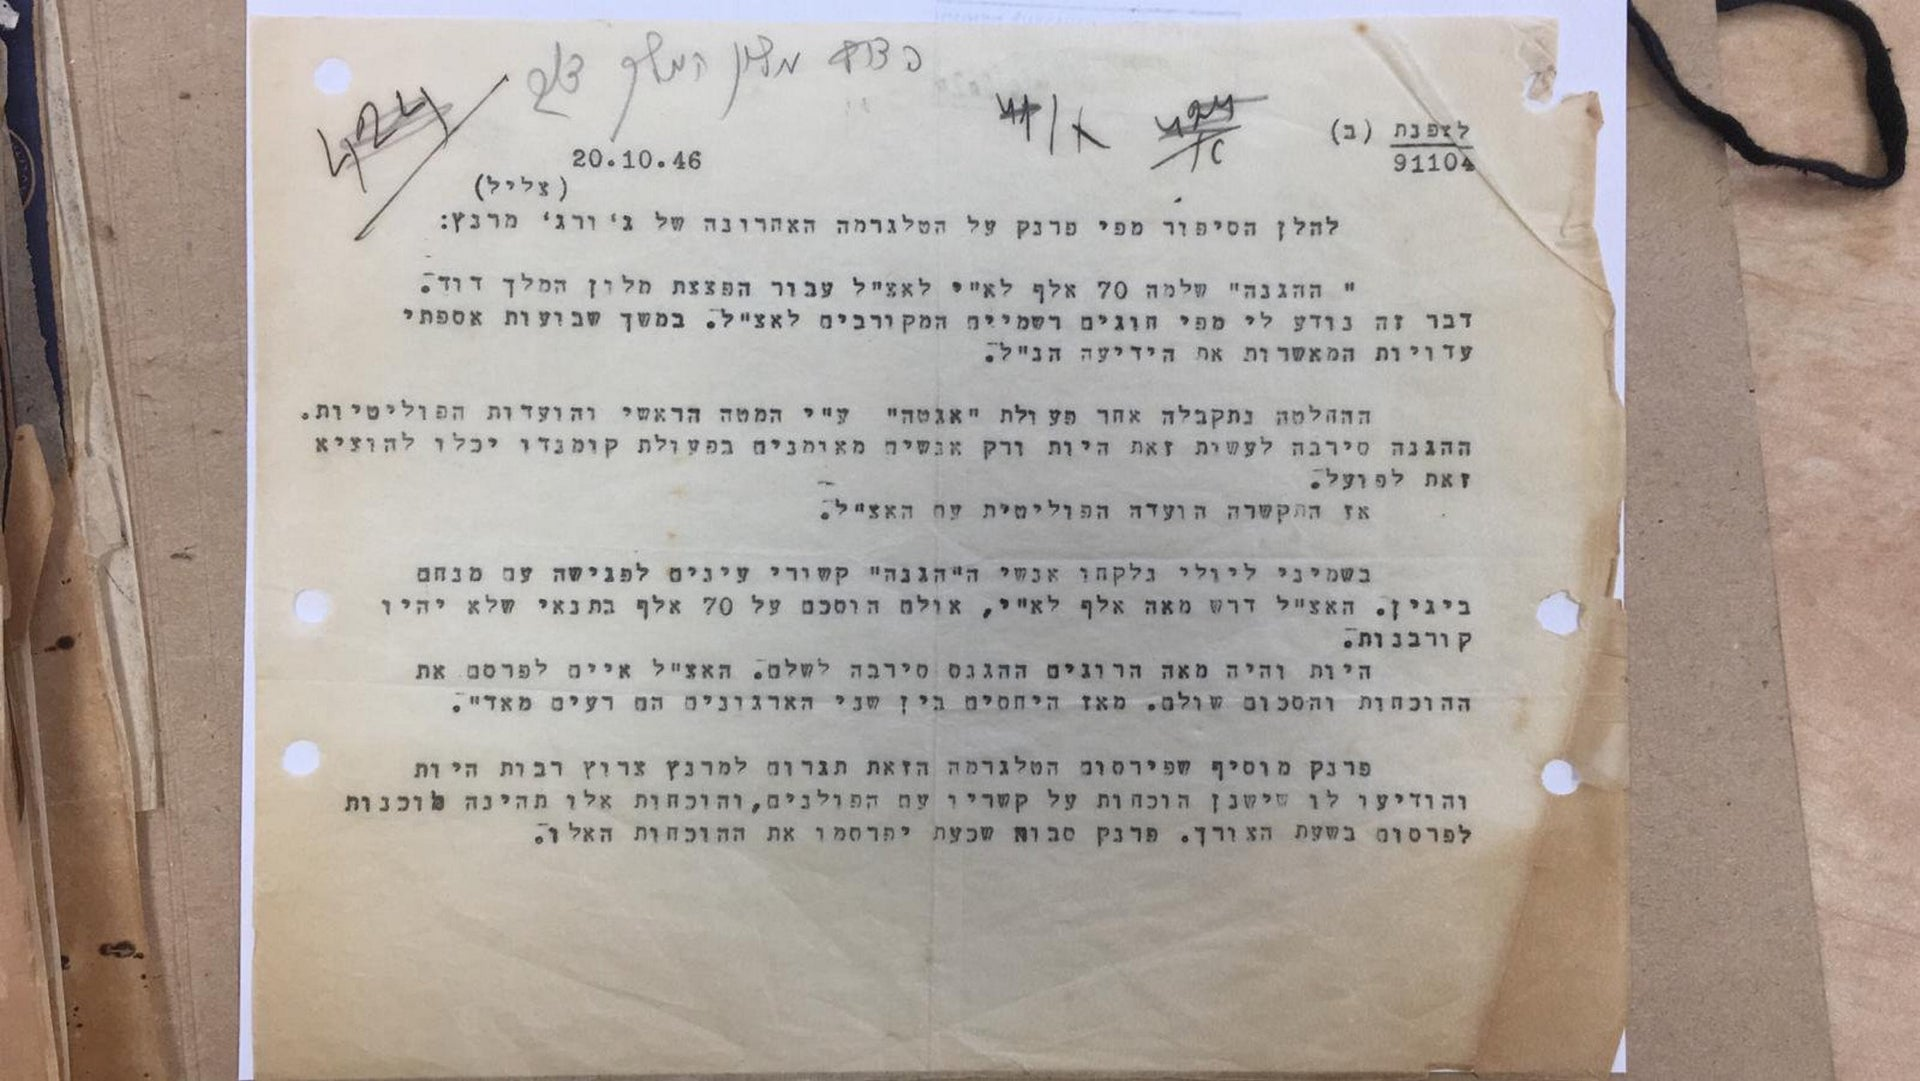 The document in the Haganah archive claiming that the Haganah paid the Irgun 70,000 Palestinian pounds to carry out the King David Hotel bombing in 1946.